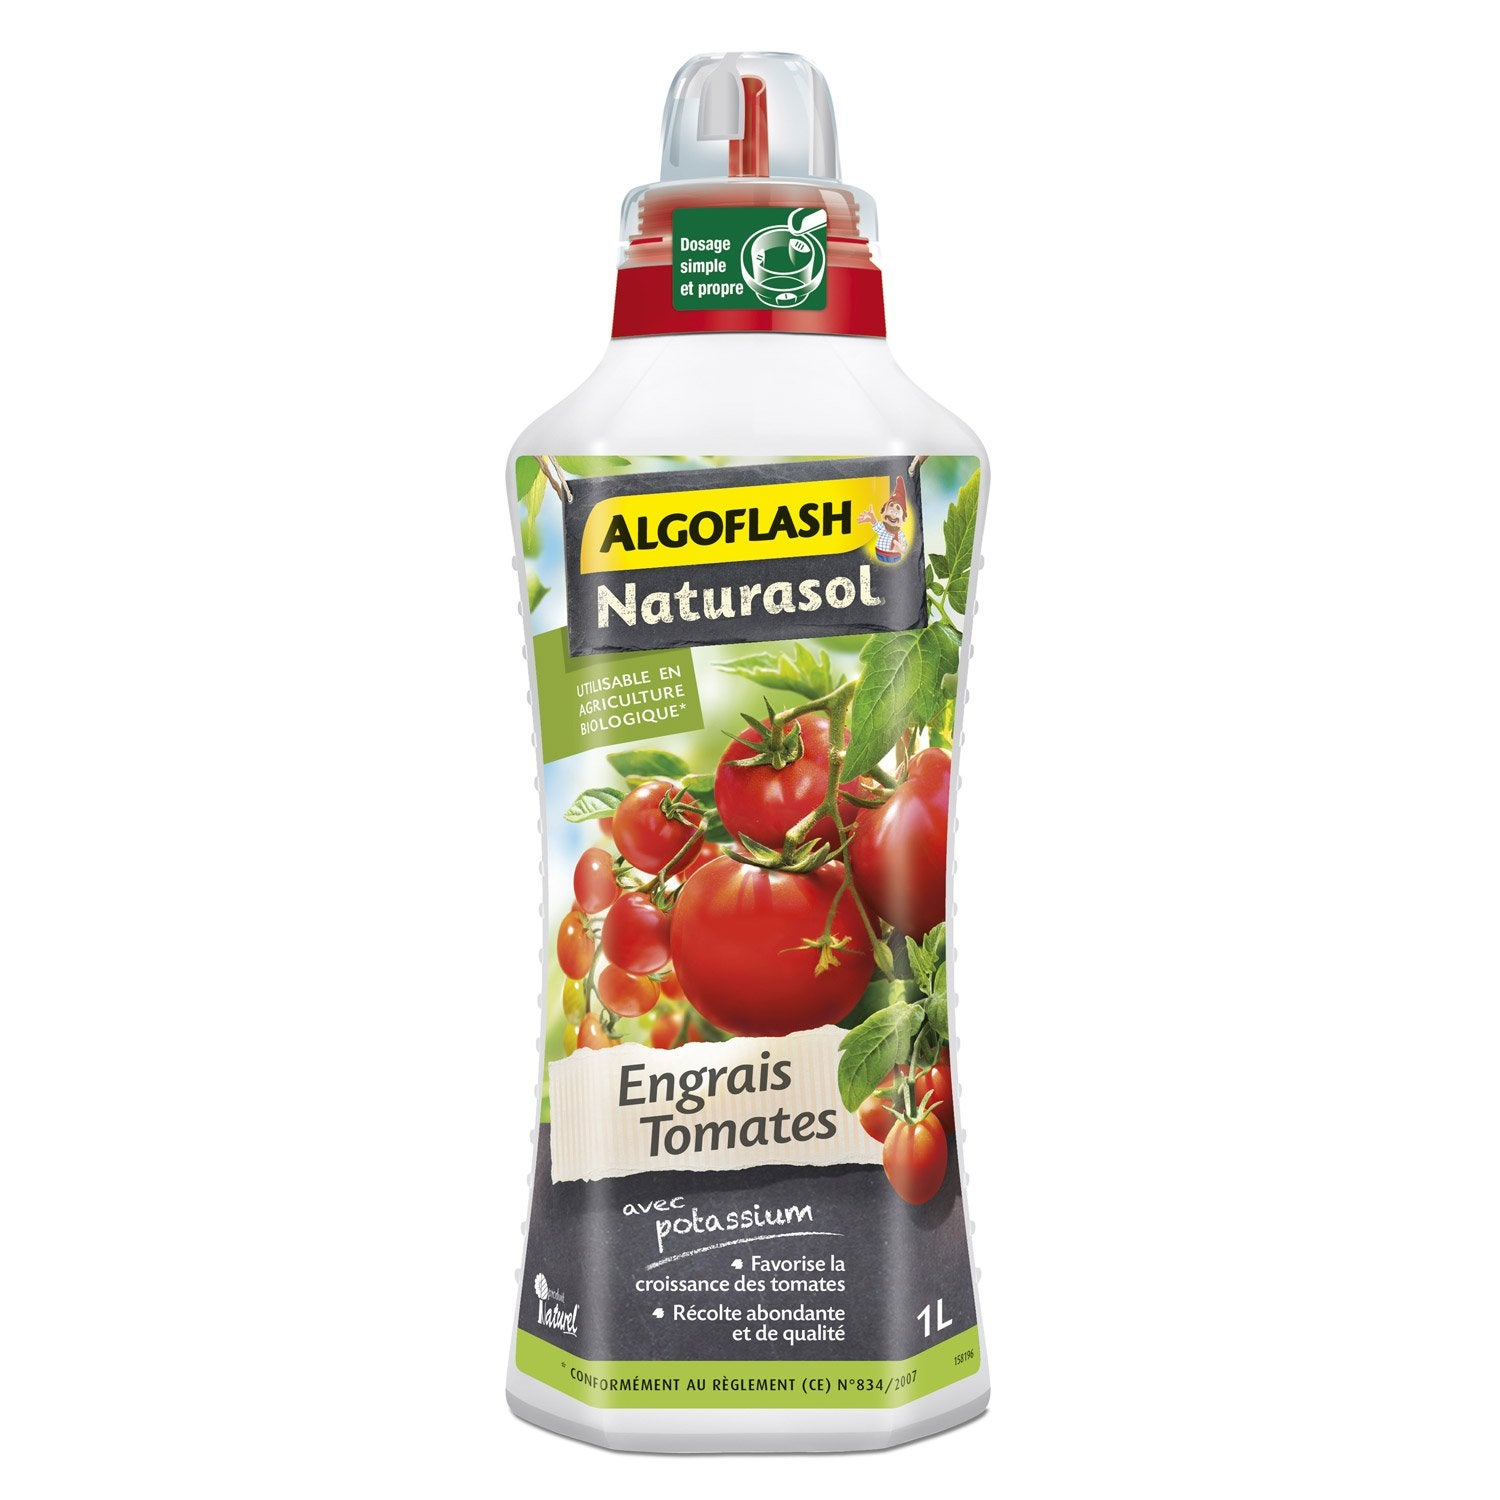 engrais naturel tomates algoflash 1000ml leroy merlin. Black Bedroom Furniture Sets. Home Design Ideas